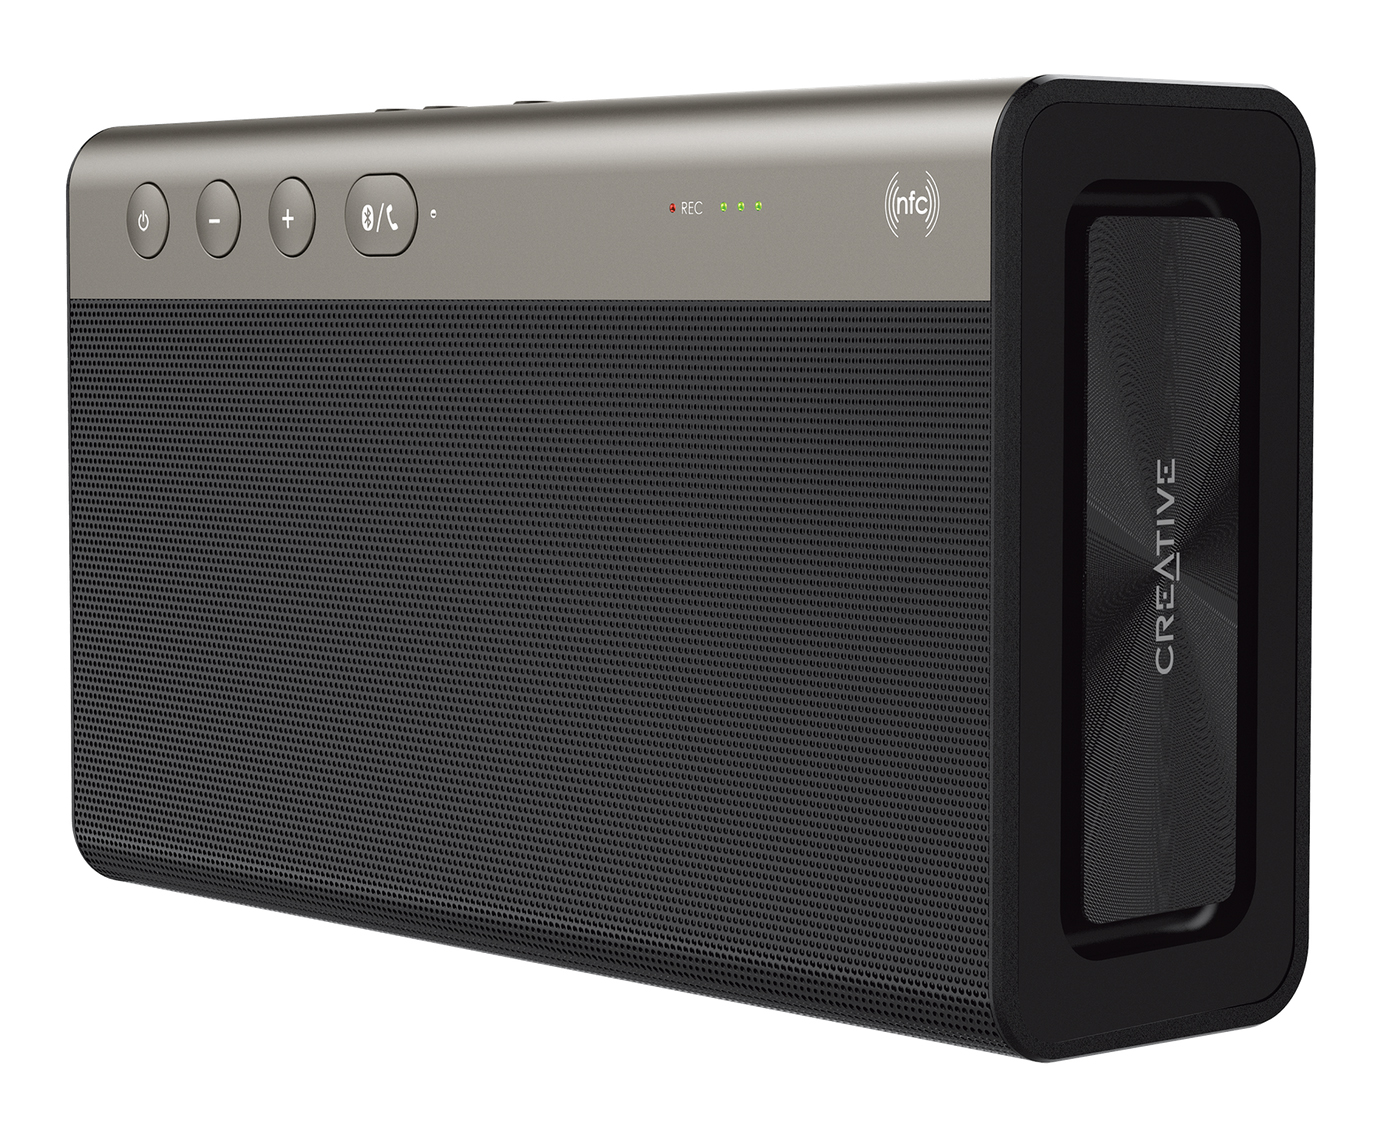 Creative Sound Blaster Roar 2 Portable NFC Bluetooth Speaker with aptX/AAC (Black) Standing Up